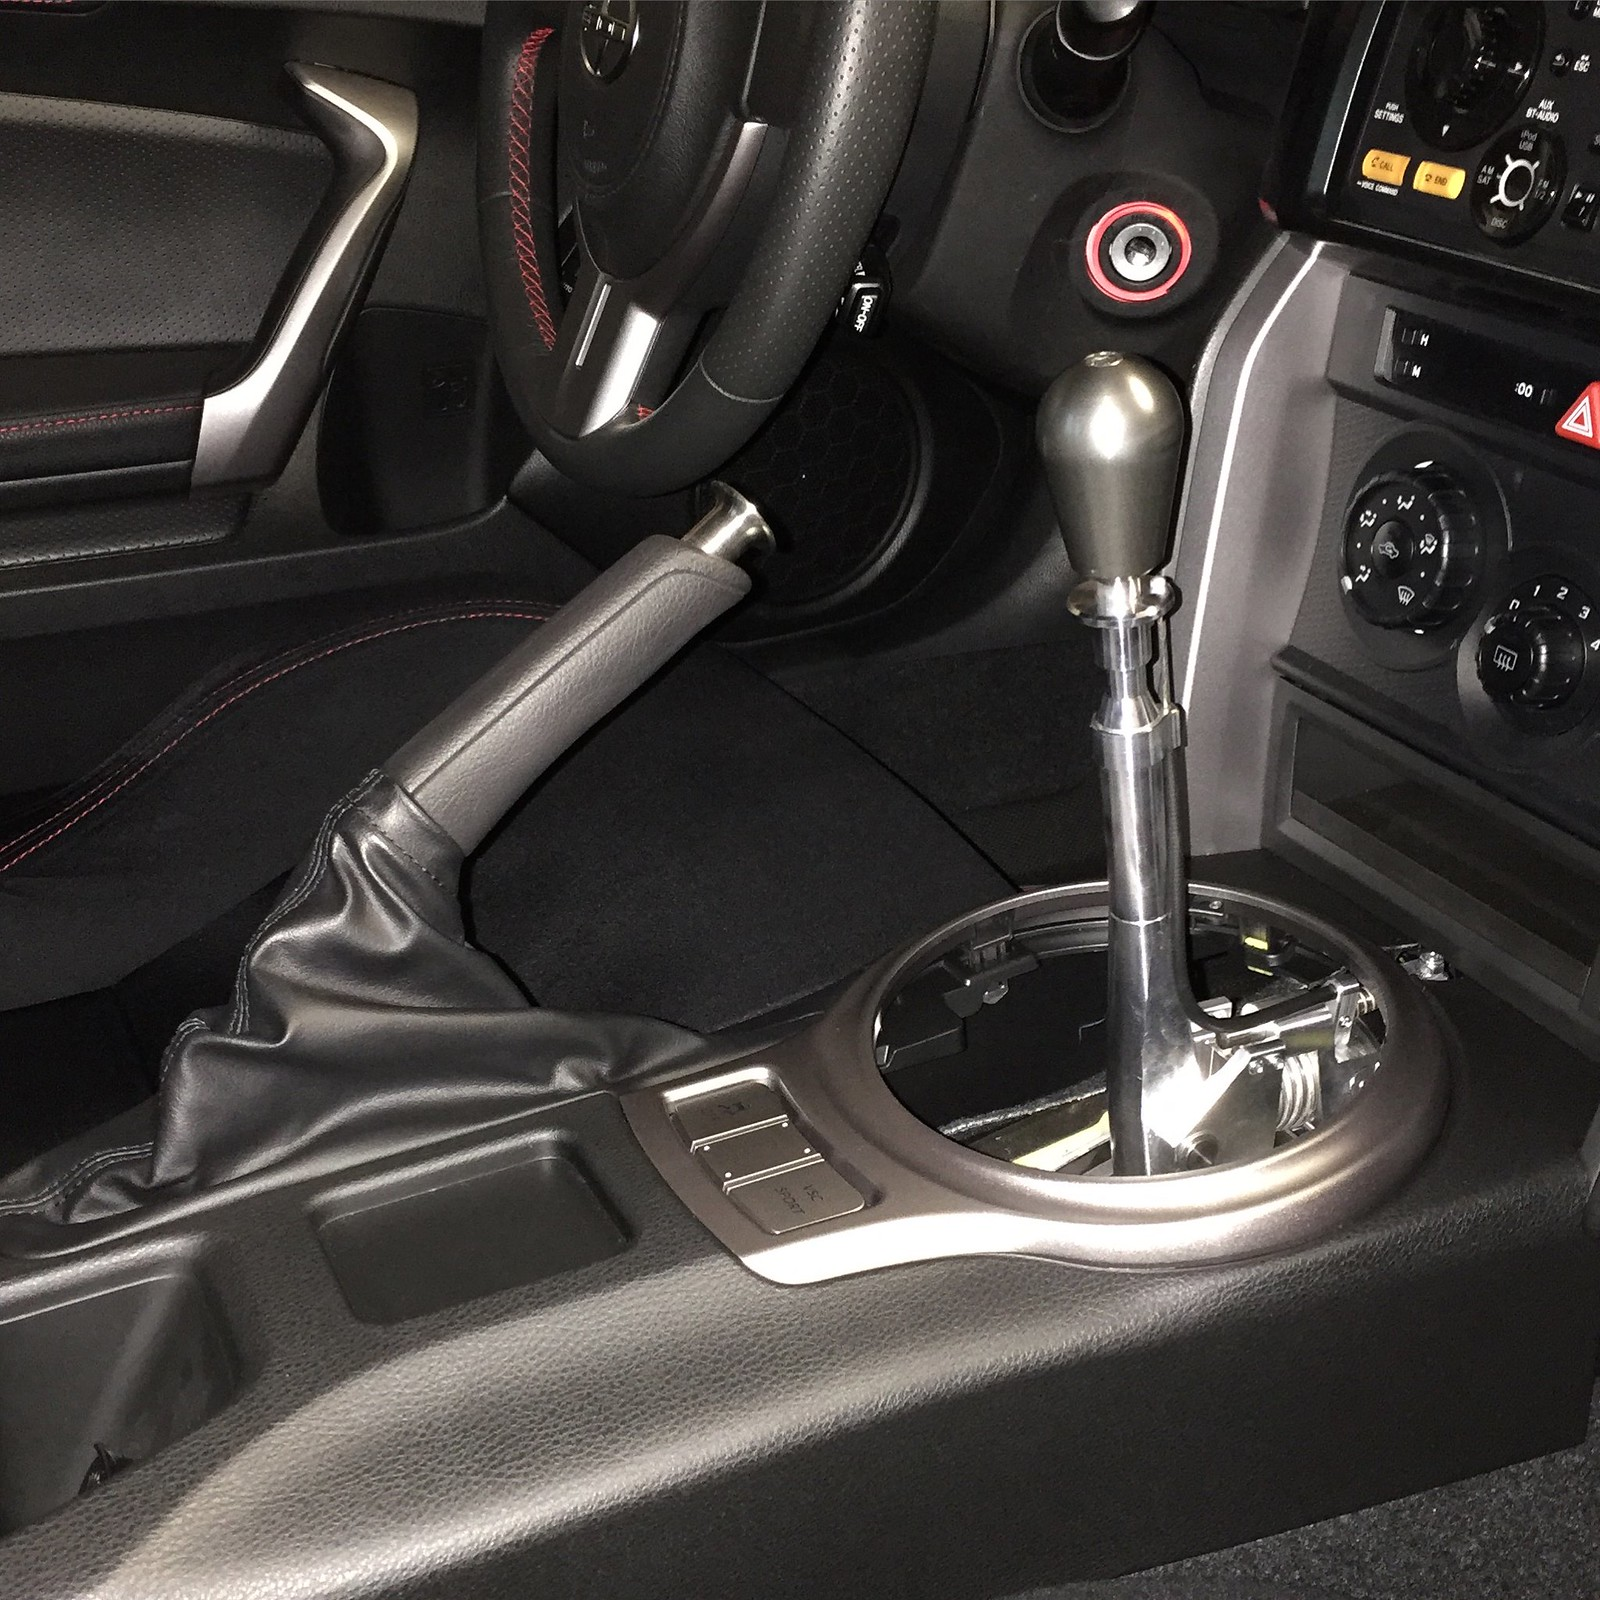 CAE Ultra Shifter install    - Page 5 - Scion FR-S Forum | Subaru BRZ